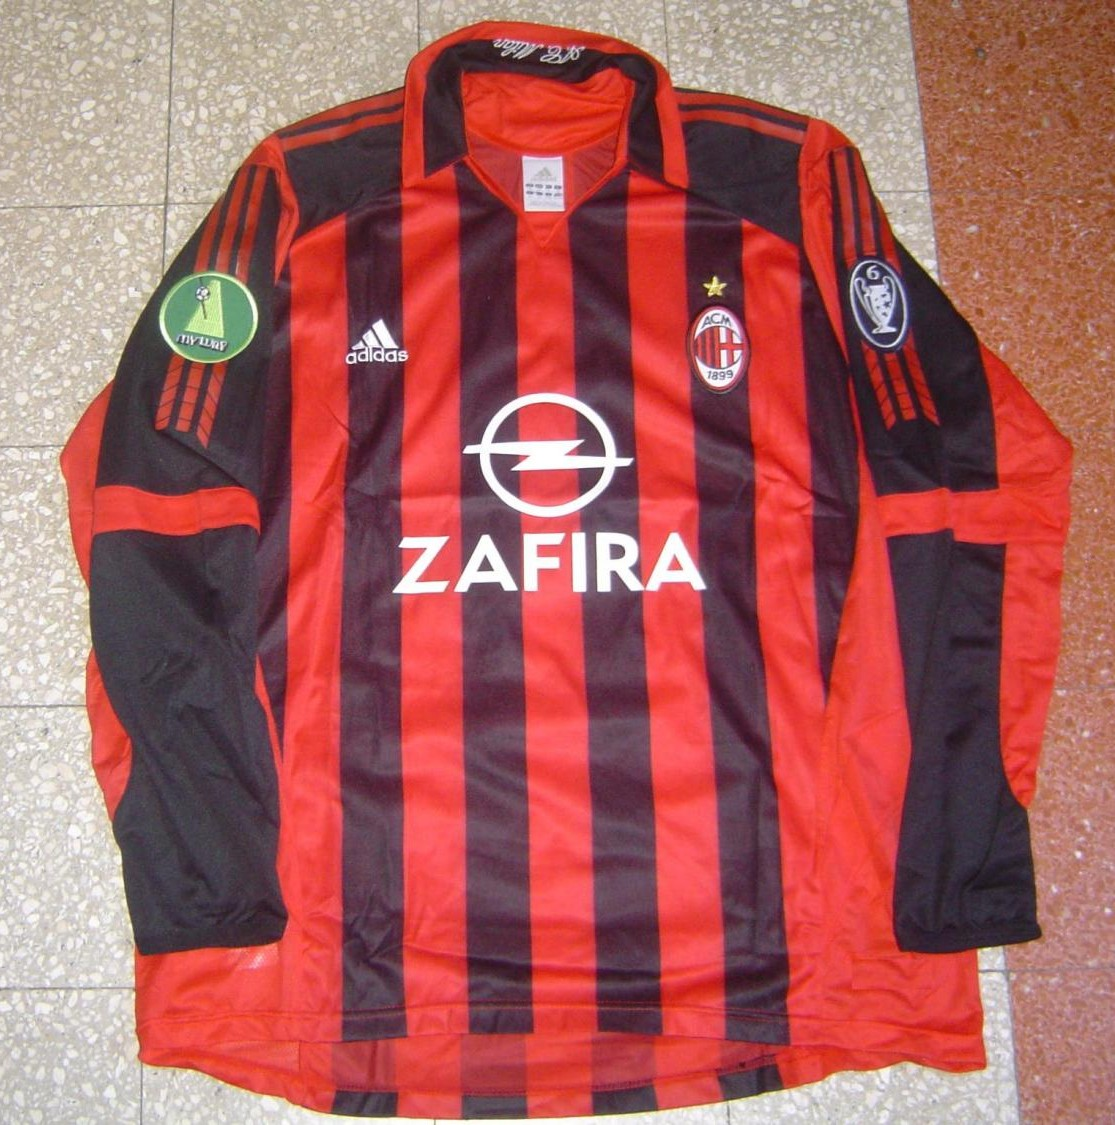 AC Milan Home футболка 2005 2006. Sponsored by Opel zafira